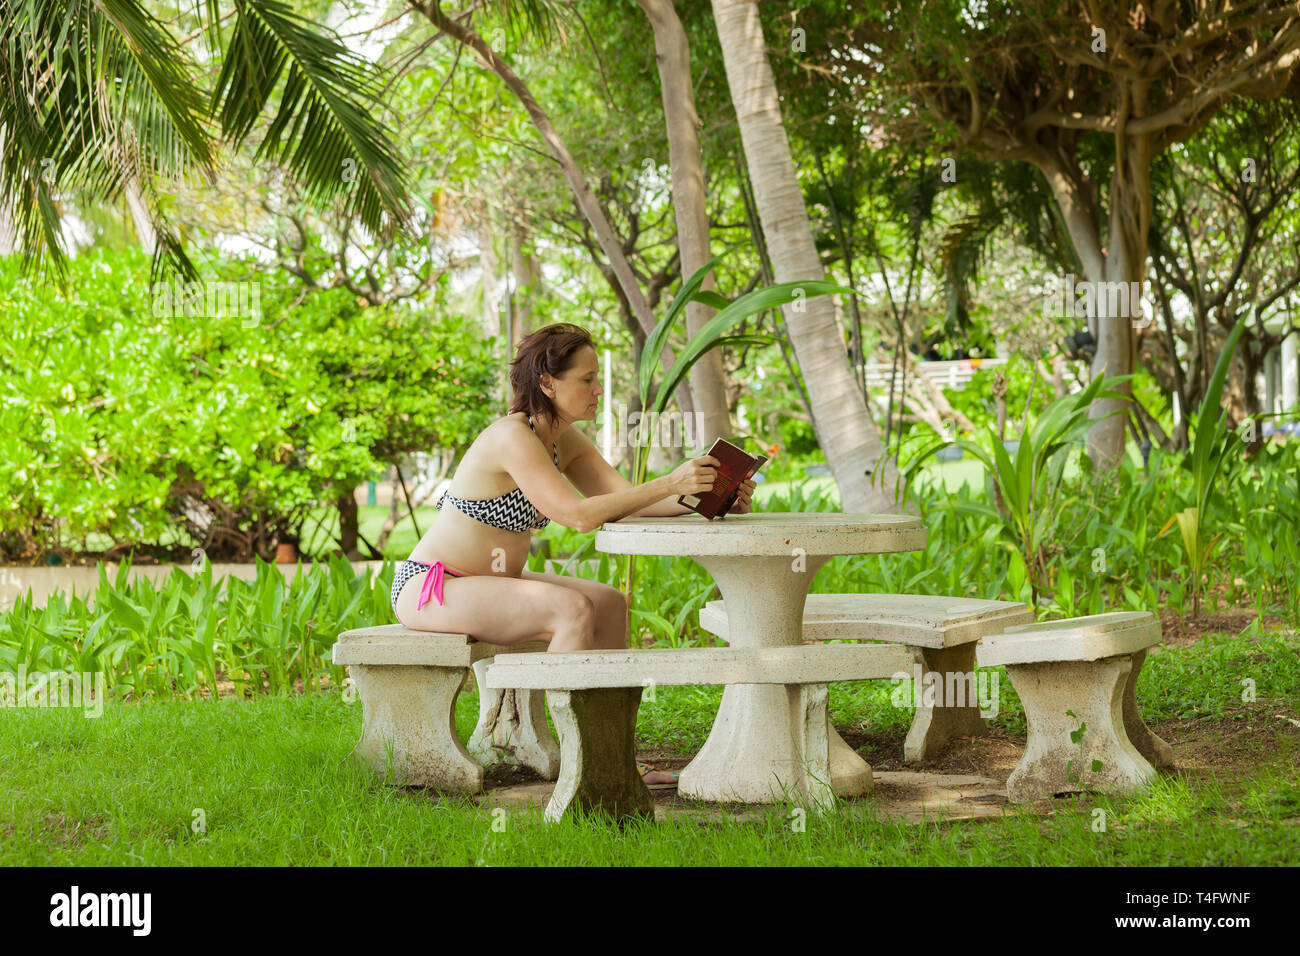 A woman reading a book in the garden with stone furniture. - Stock Image